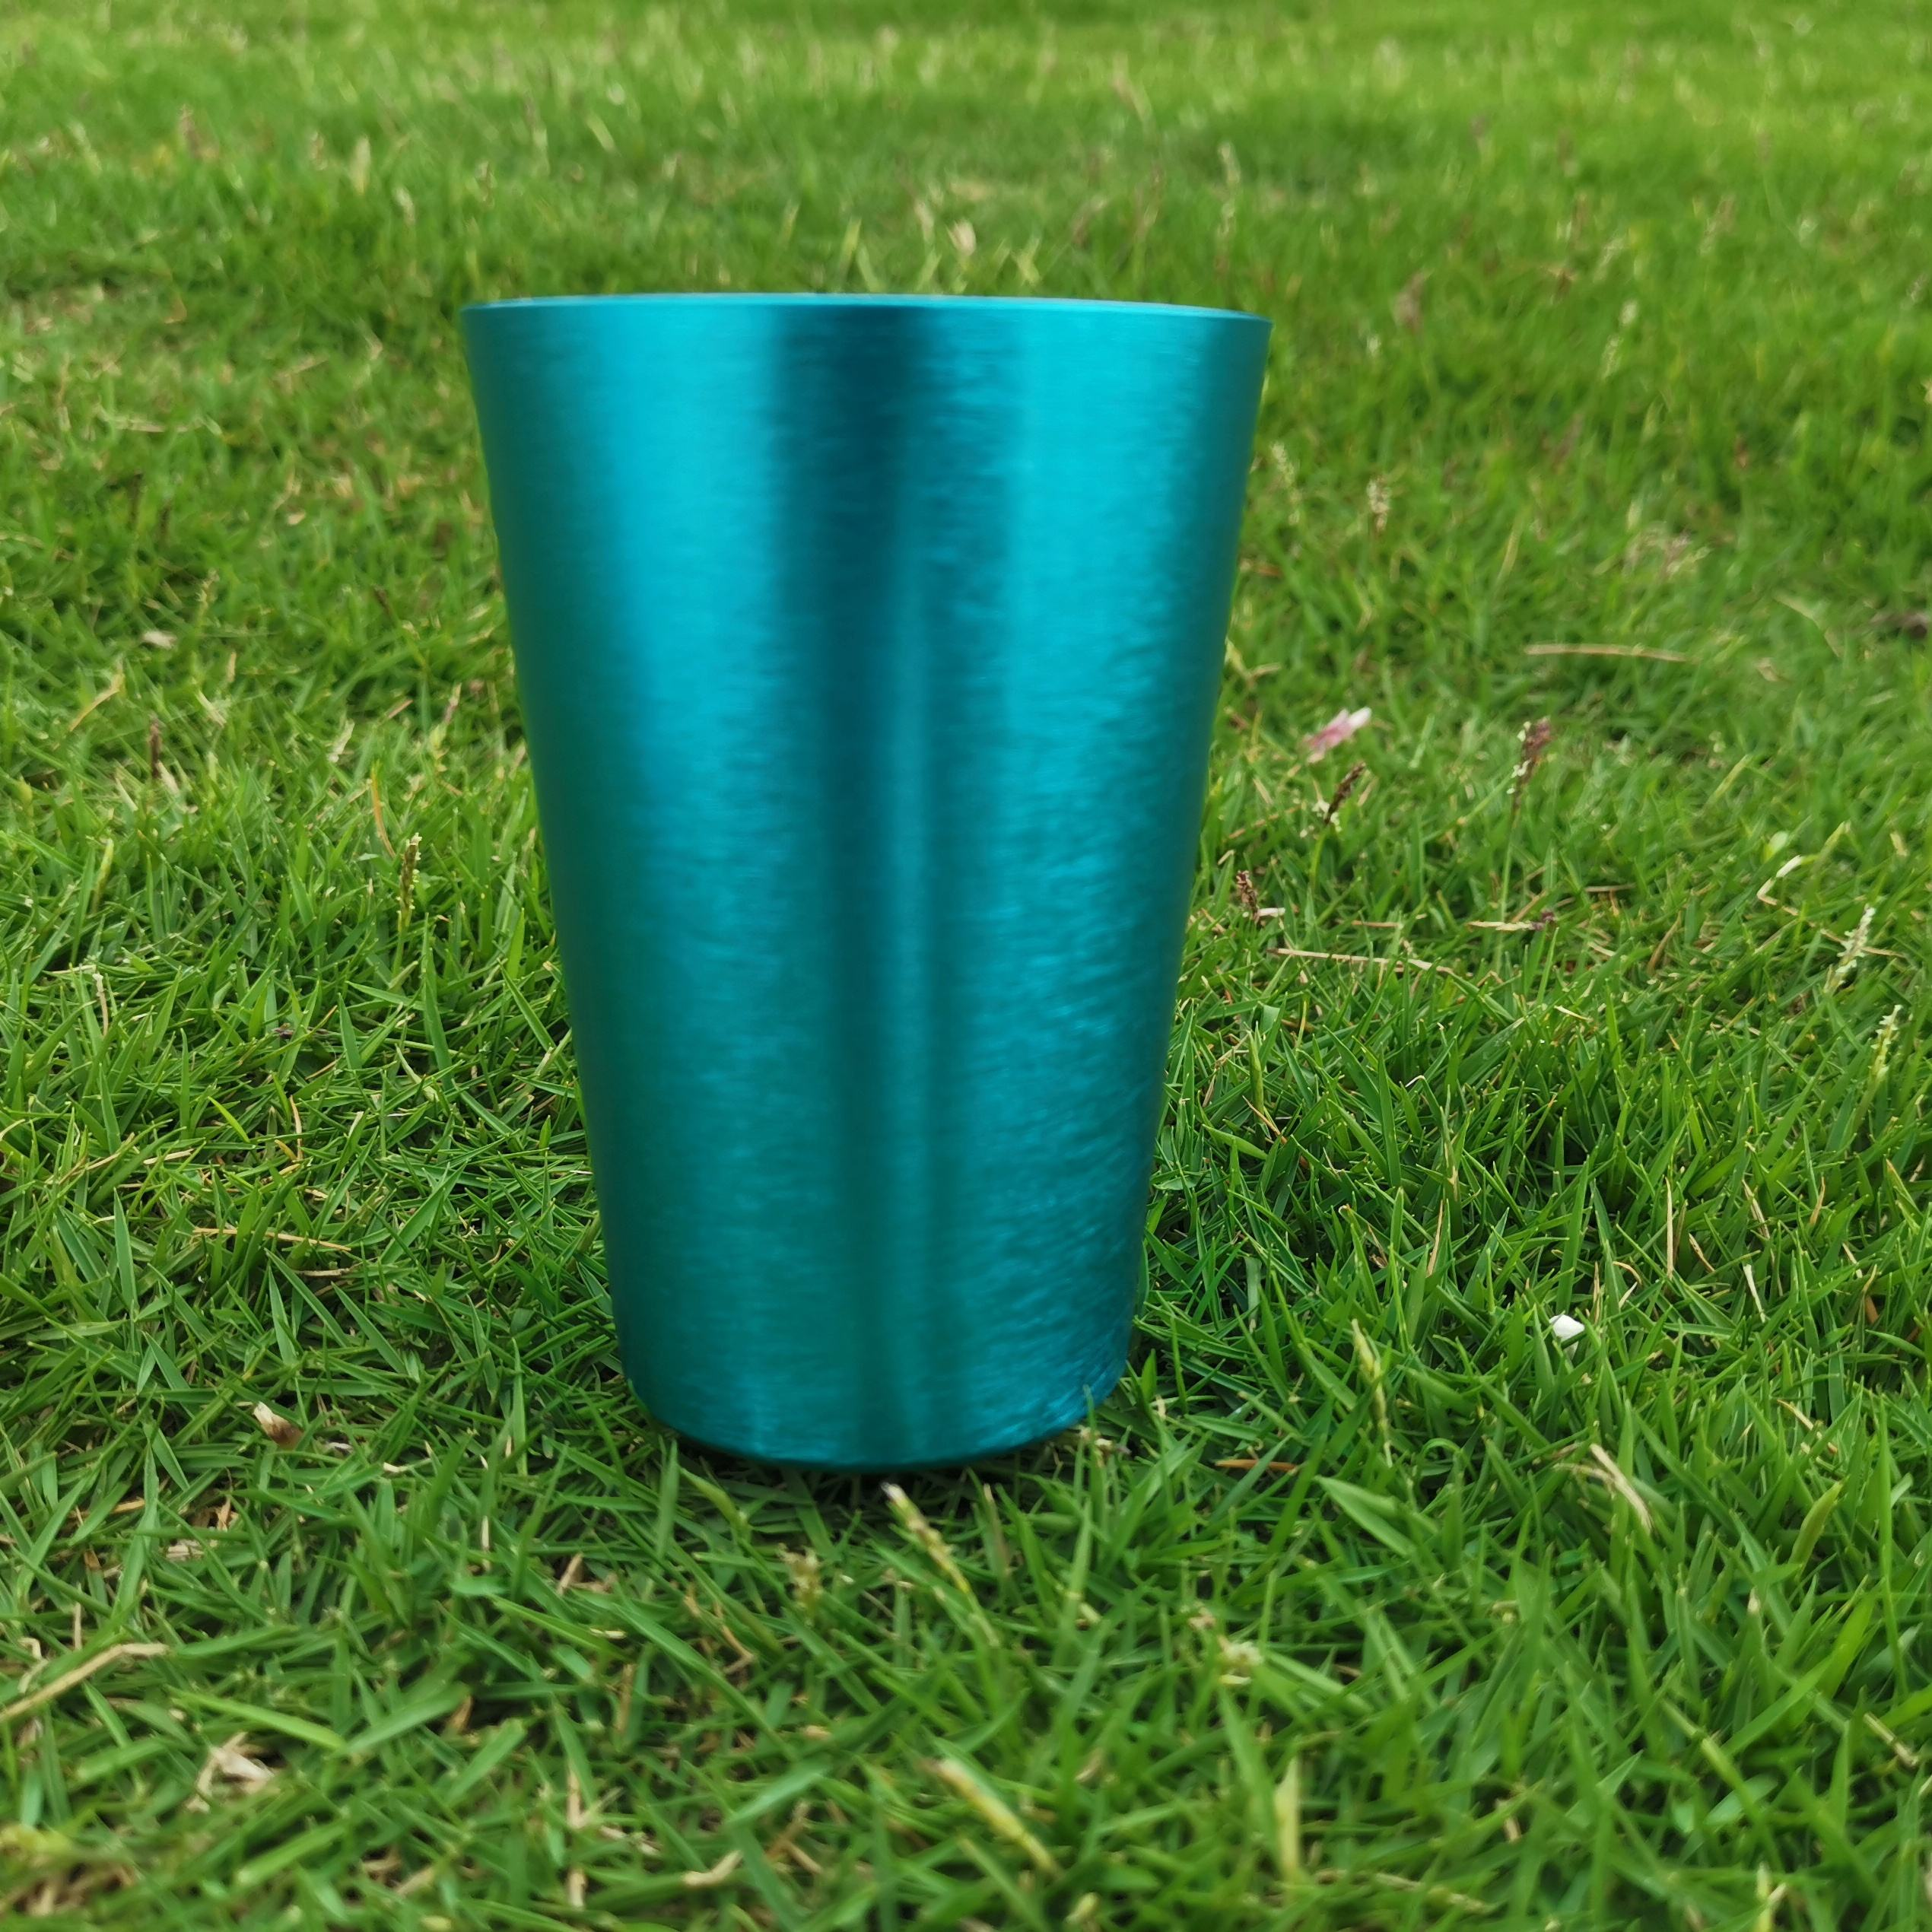 2019 220ml/8oz blue color anodized aluminum cup tulip german beer glass